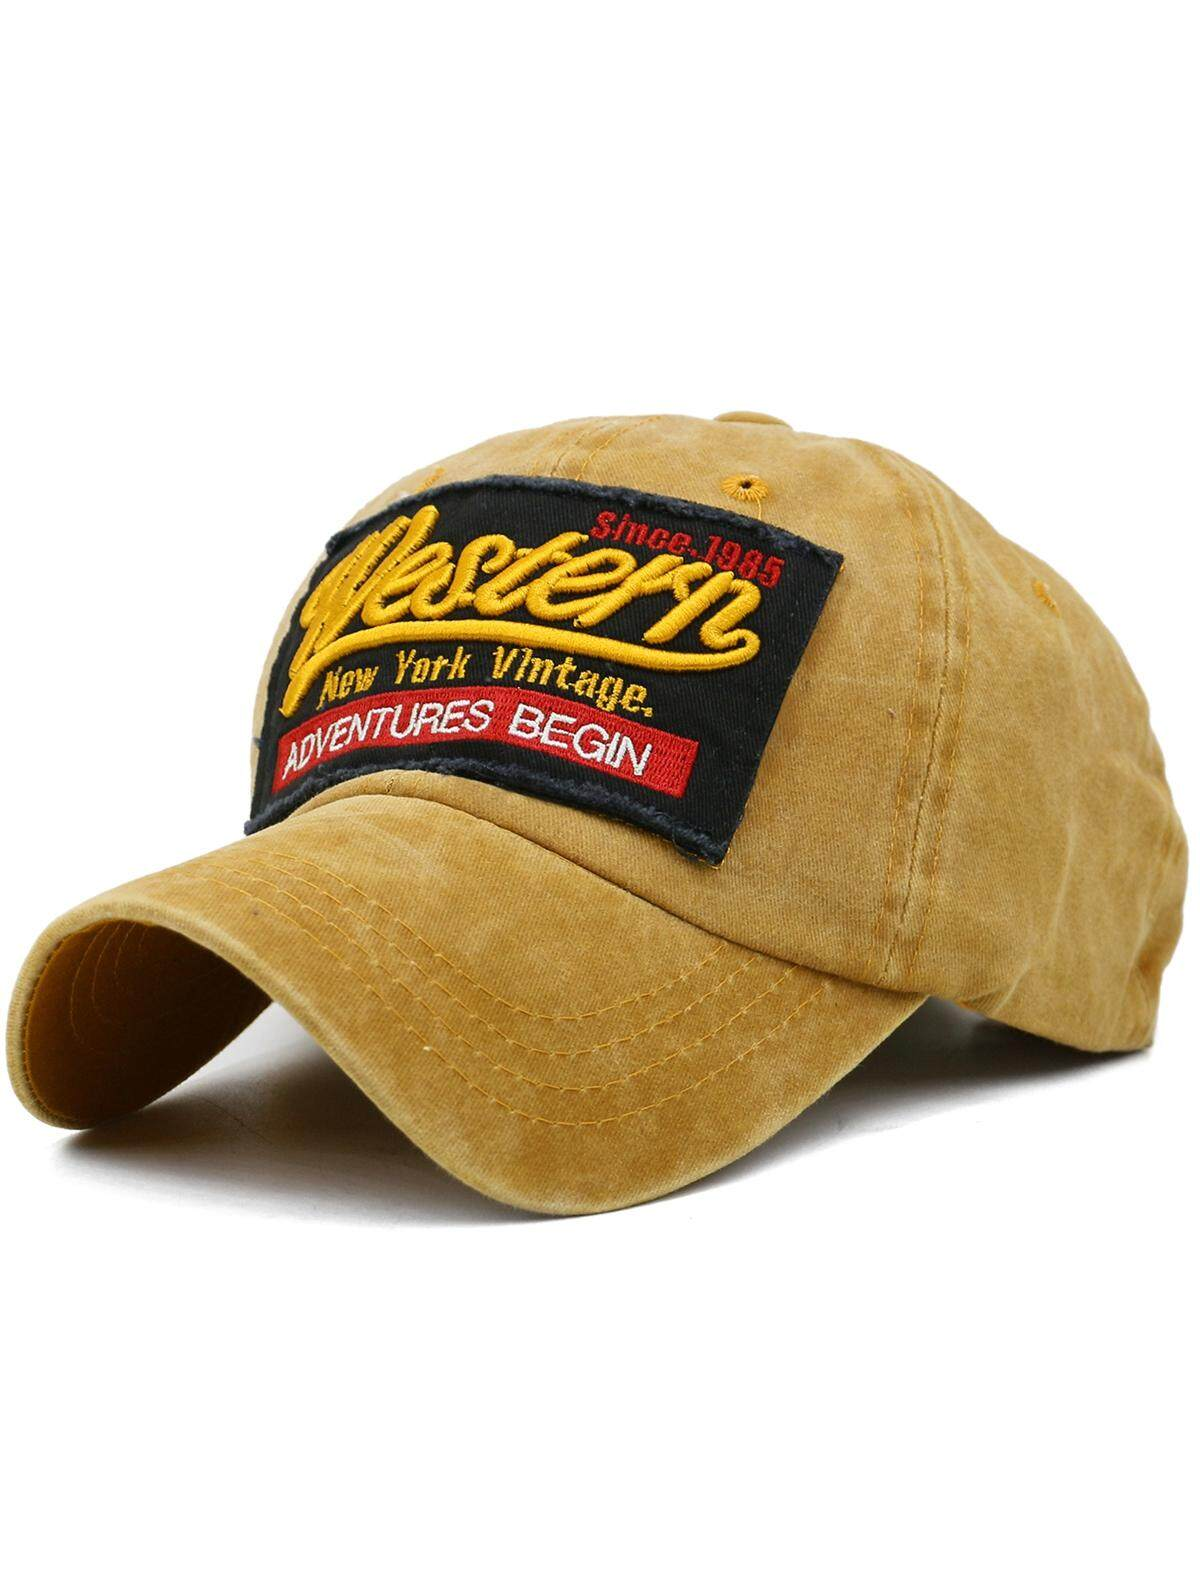 ADVENTURES BEGIN Embroidery Washed Dyed Baseball Cap (Color:MACARONI AND CHEESE)